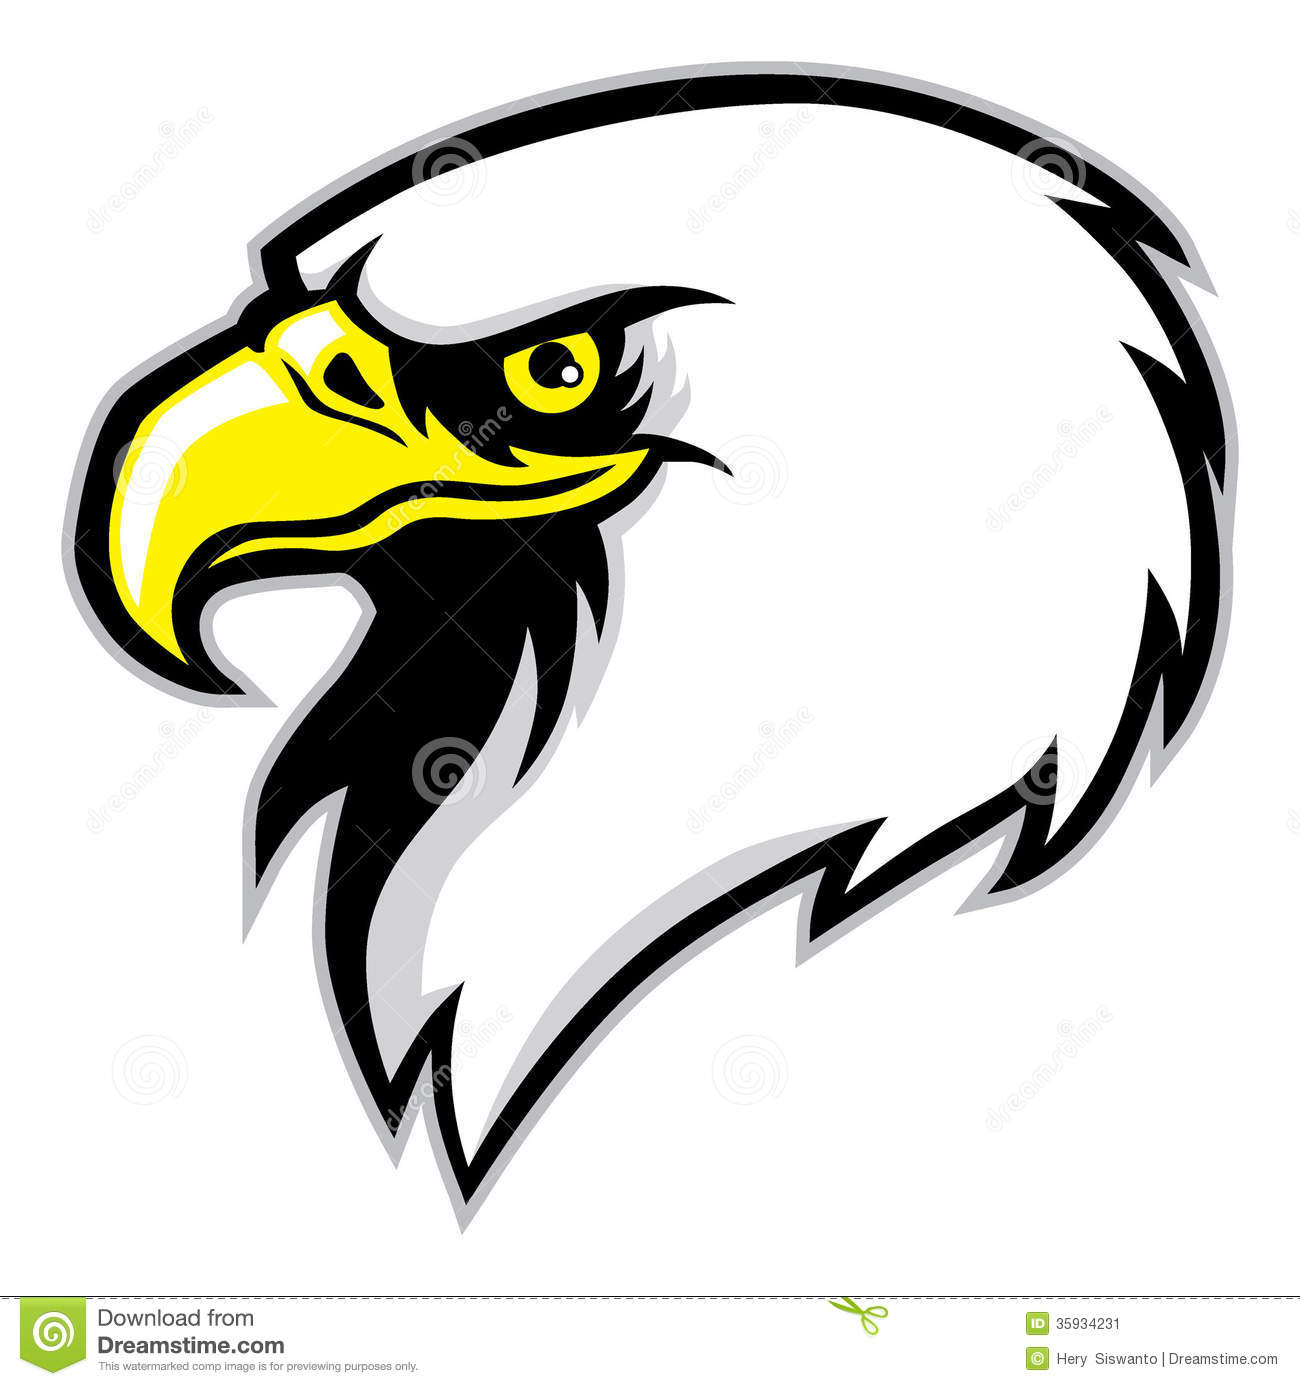 Eagle Head Mascot Stock Image   Image  35934231